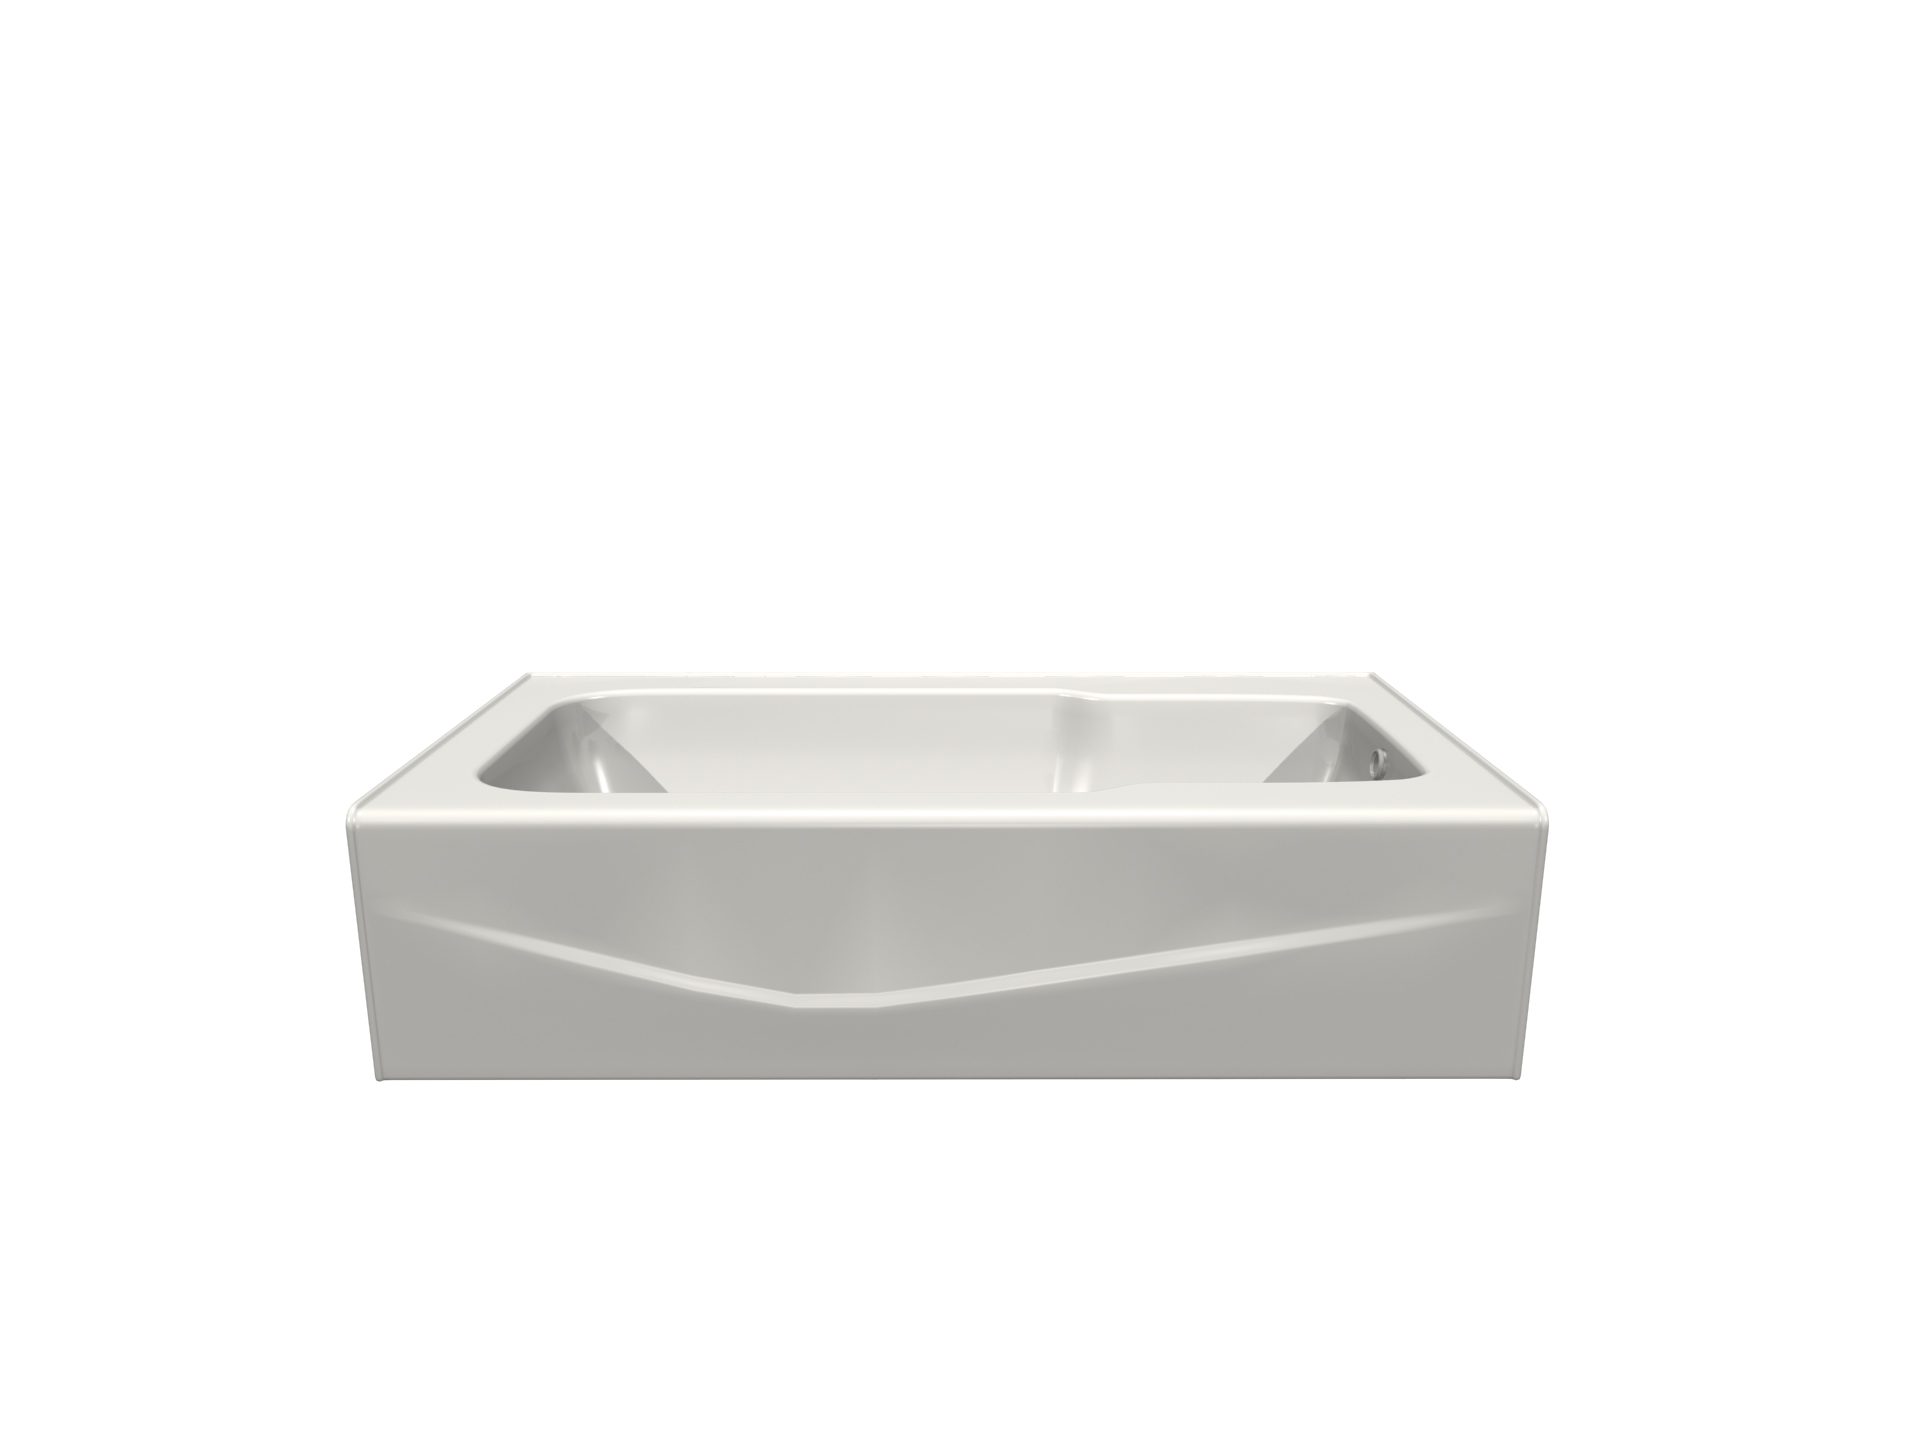 3D bathroom model – bathtub 001